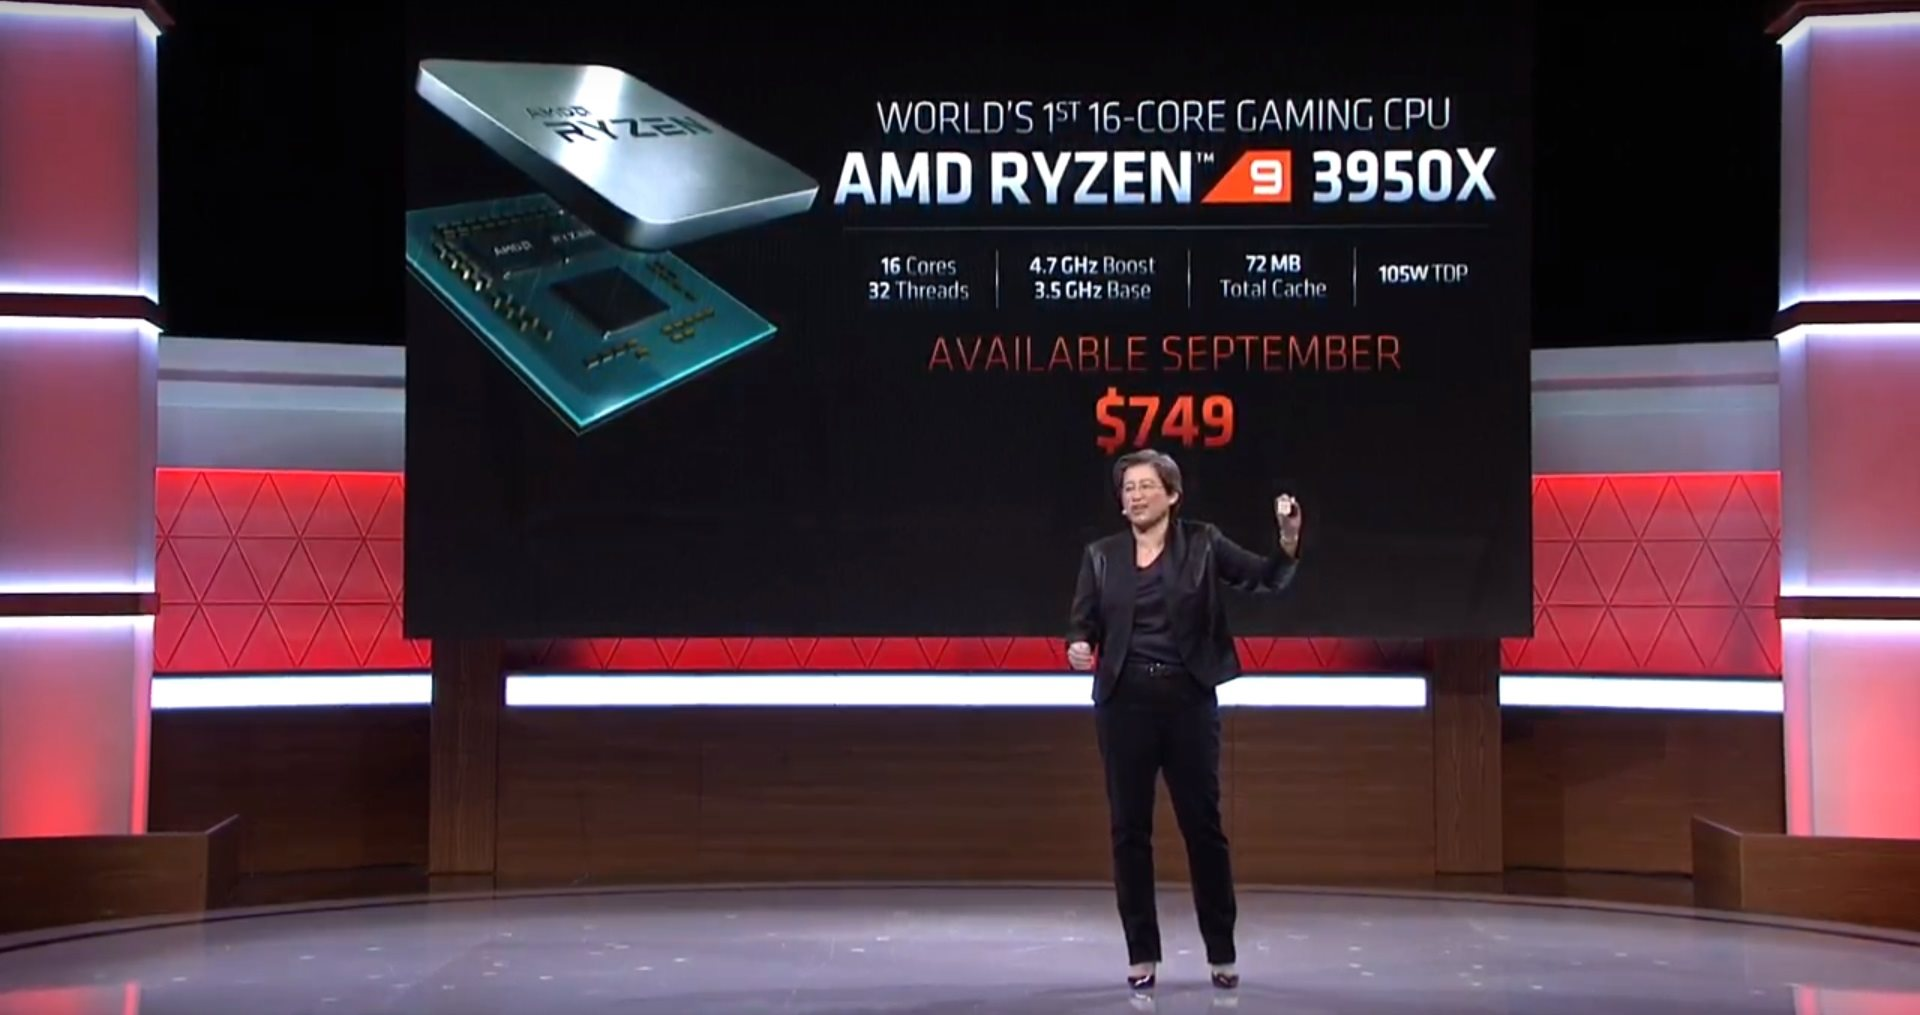 AMD; screenshot: AMD Ryzen 3950x